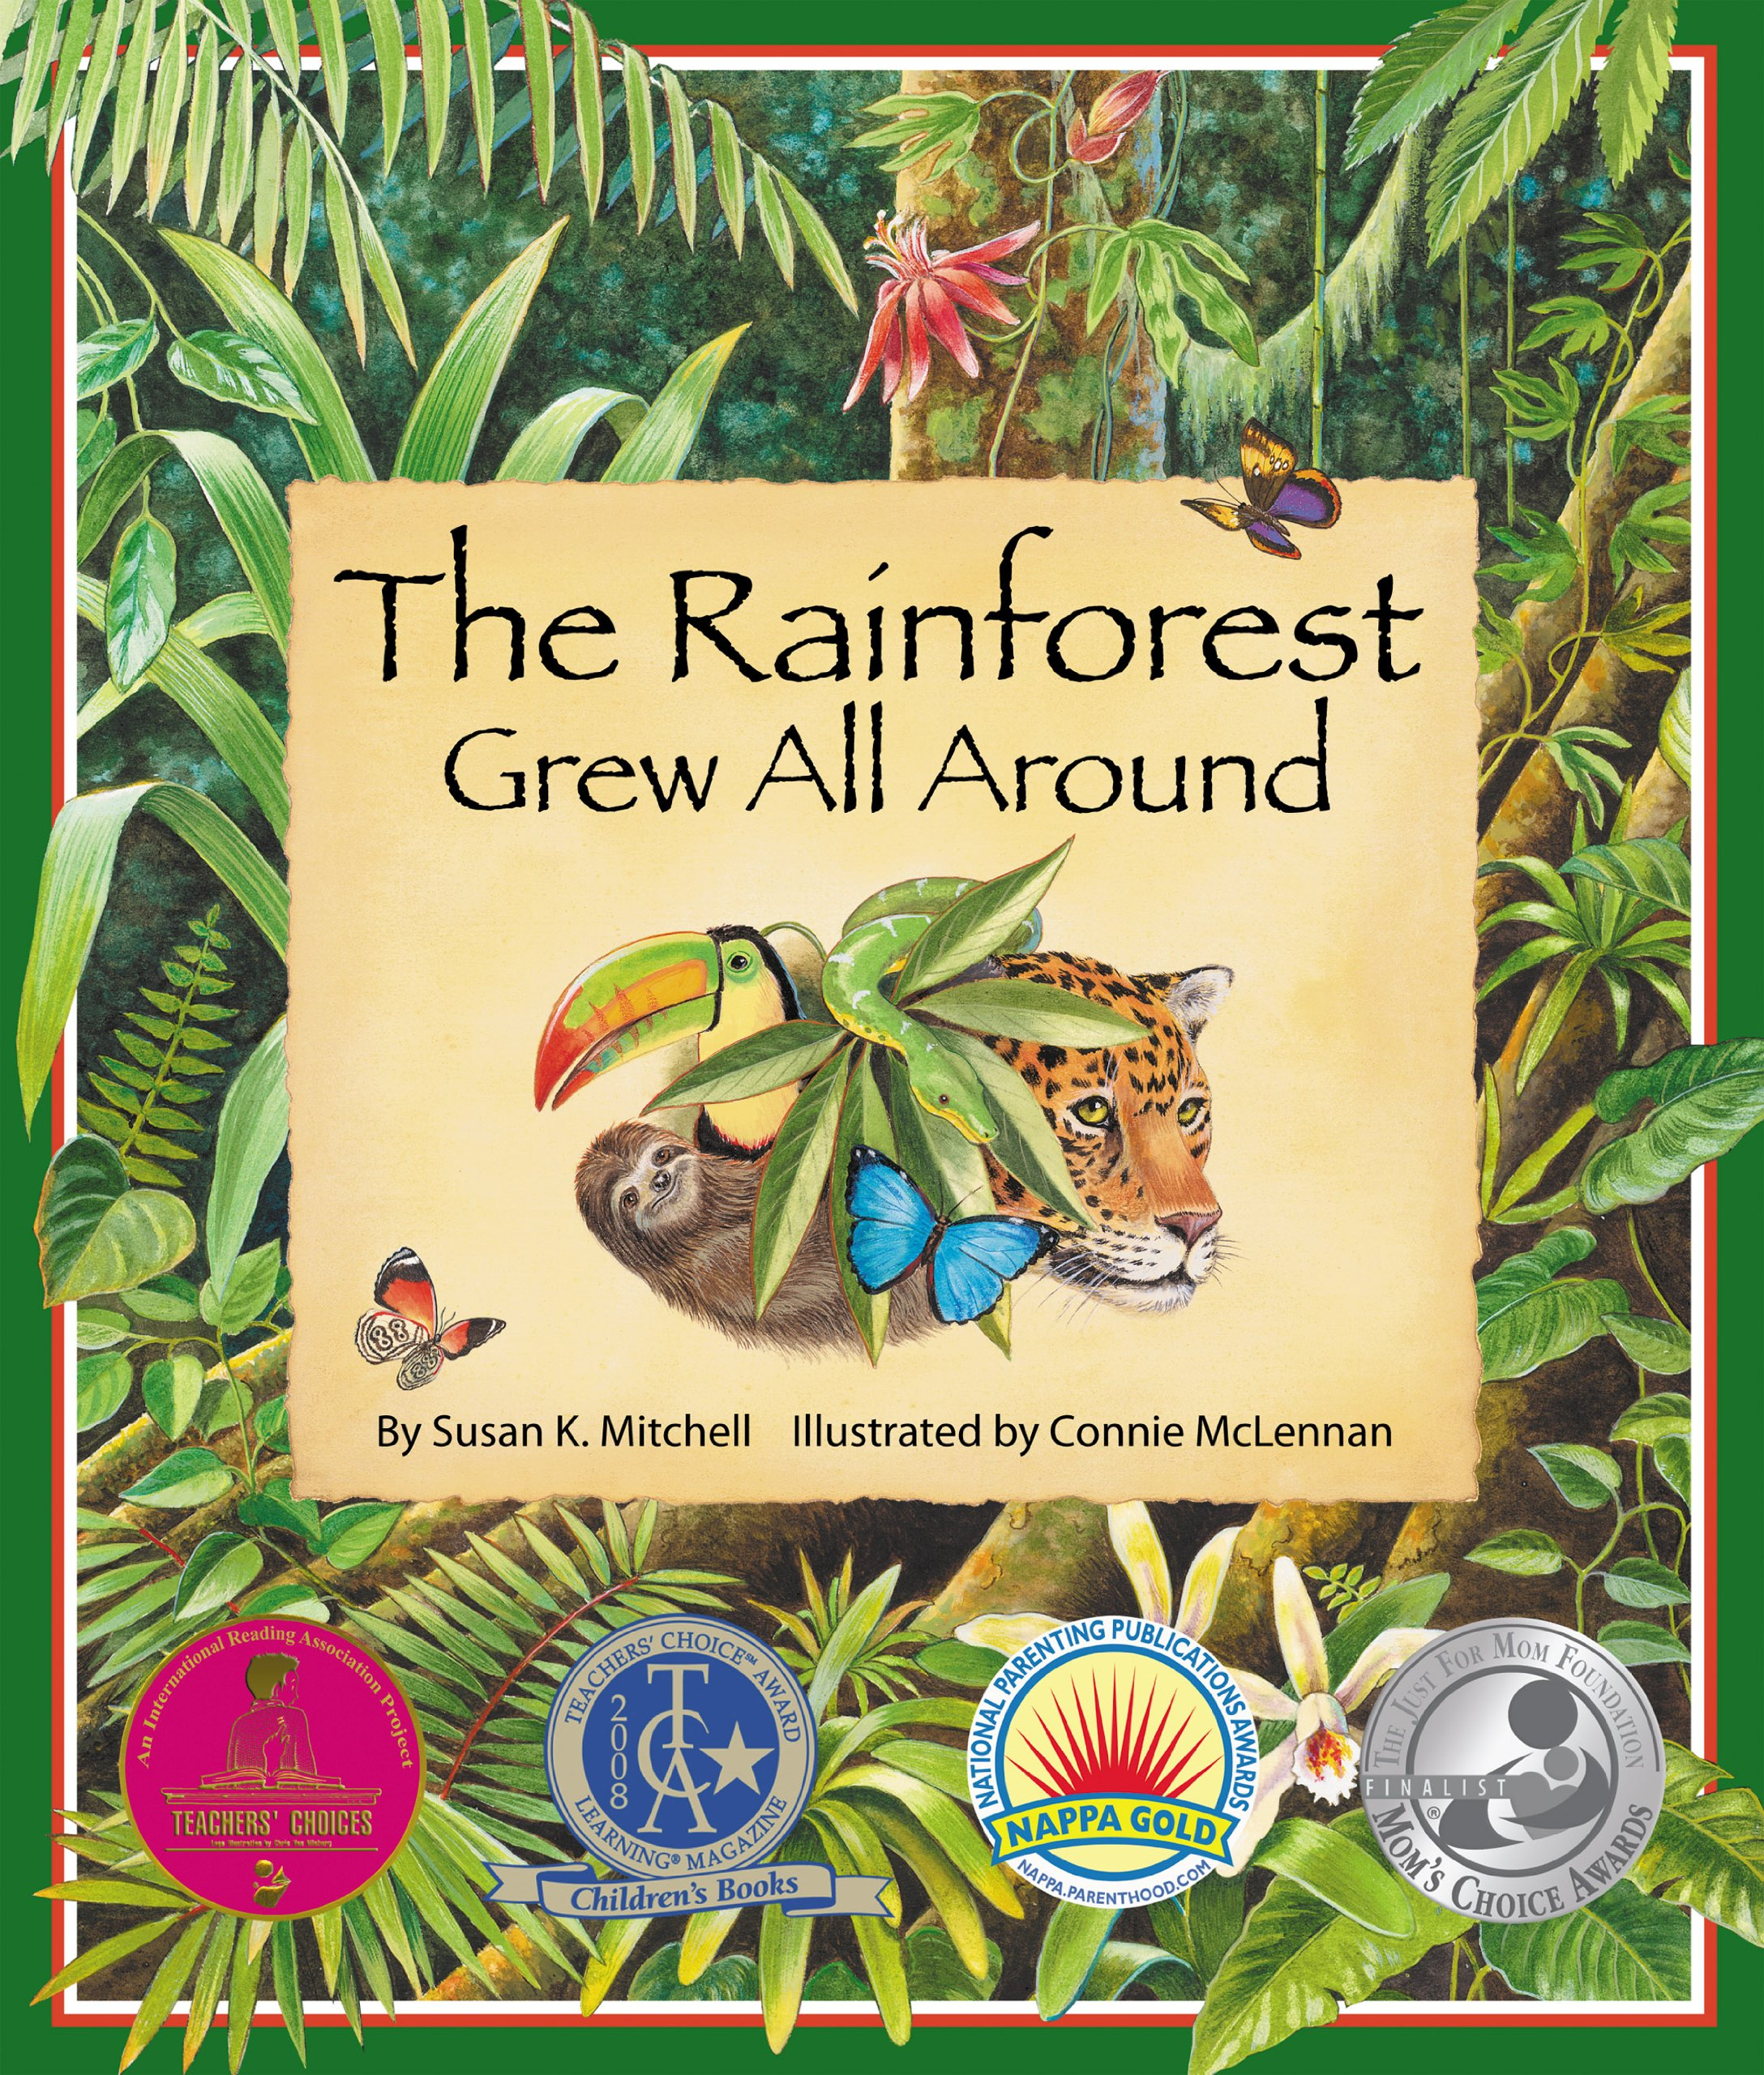 The rainforest grew all around susan k mitchell connie mclennan the rainforest grew all around susan k mitchell connie mclennan 9780977742387 amazon books fandeluxe Images